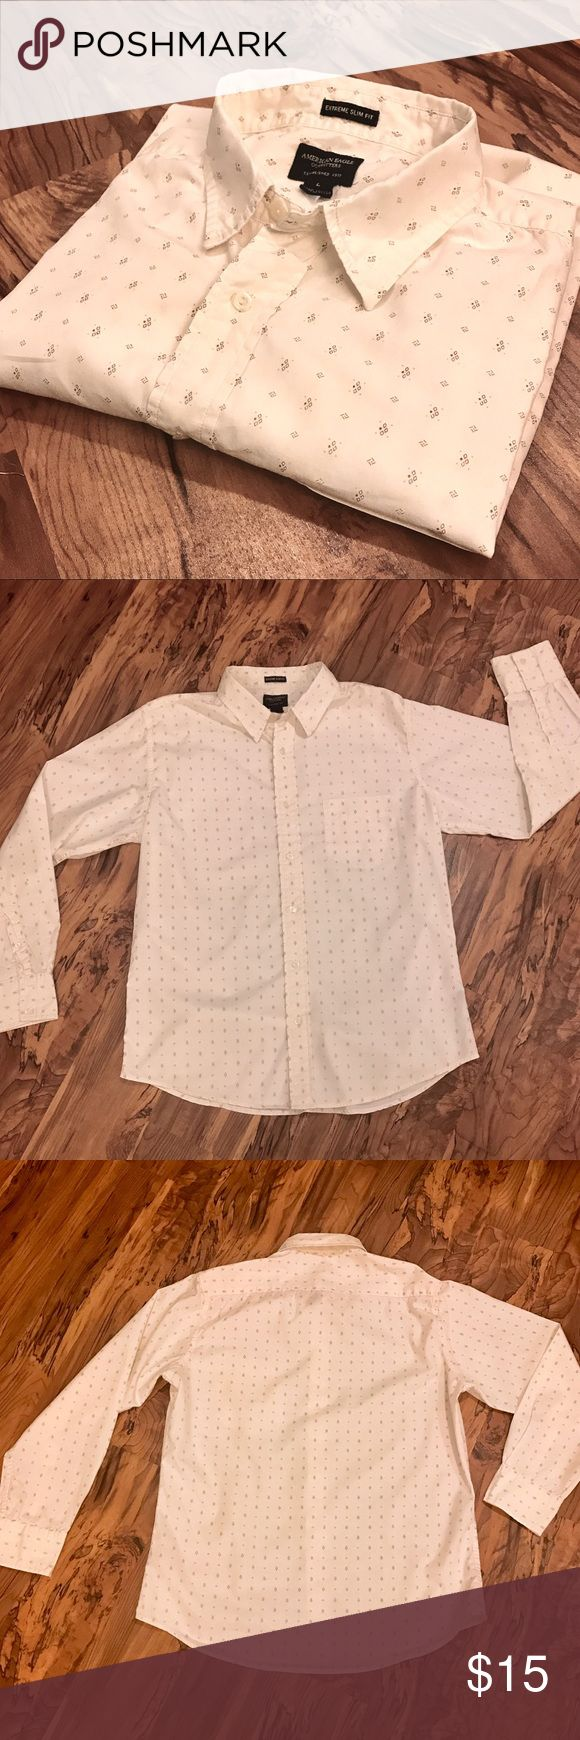 Men's American Eagle long sleeve button down. EUC Vintage men's American Eagle shirt!! Such a beautiful piece. Off white/cream color with a subtle, but sharp looking pattern of small diamond shapes that make another small diamond. The pattern is what really makes the shirt so great. Button down, long sleeve. One slip breast pocket on left front. VGUC. Size is large. Any questions just ask! Offers always welcome! American Eagle Outfitters Shirts Casual Button Down Shirts